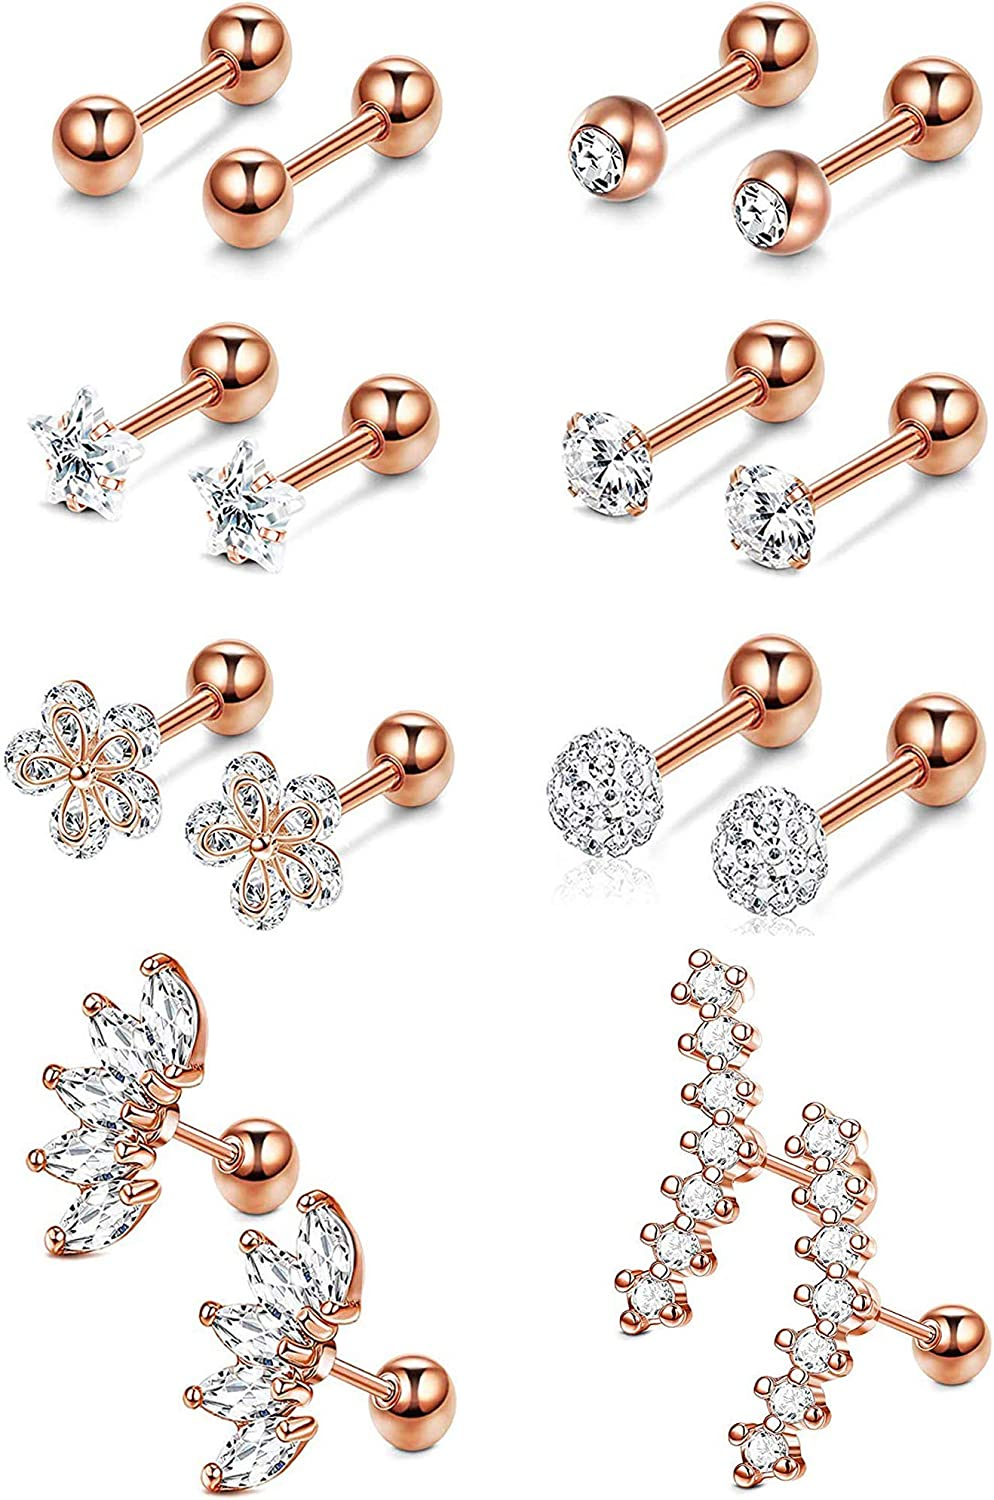 YADOCA 8 Pairs Stainless Steel Ear Cartilage Piercing Earrings Helix Tragus Barbell for Women Men Moon Star Flower CZ Stackable Cartilage Earrings Set Silver-tone Rose Gold-tone Gold-tone